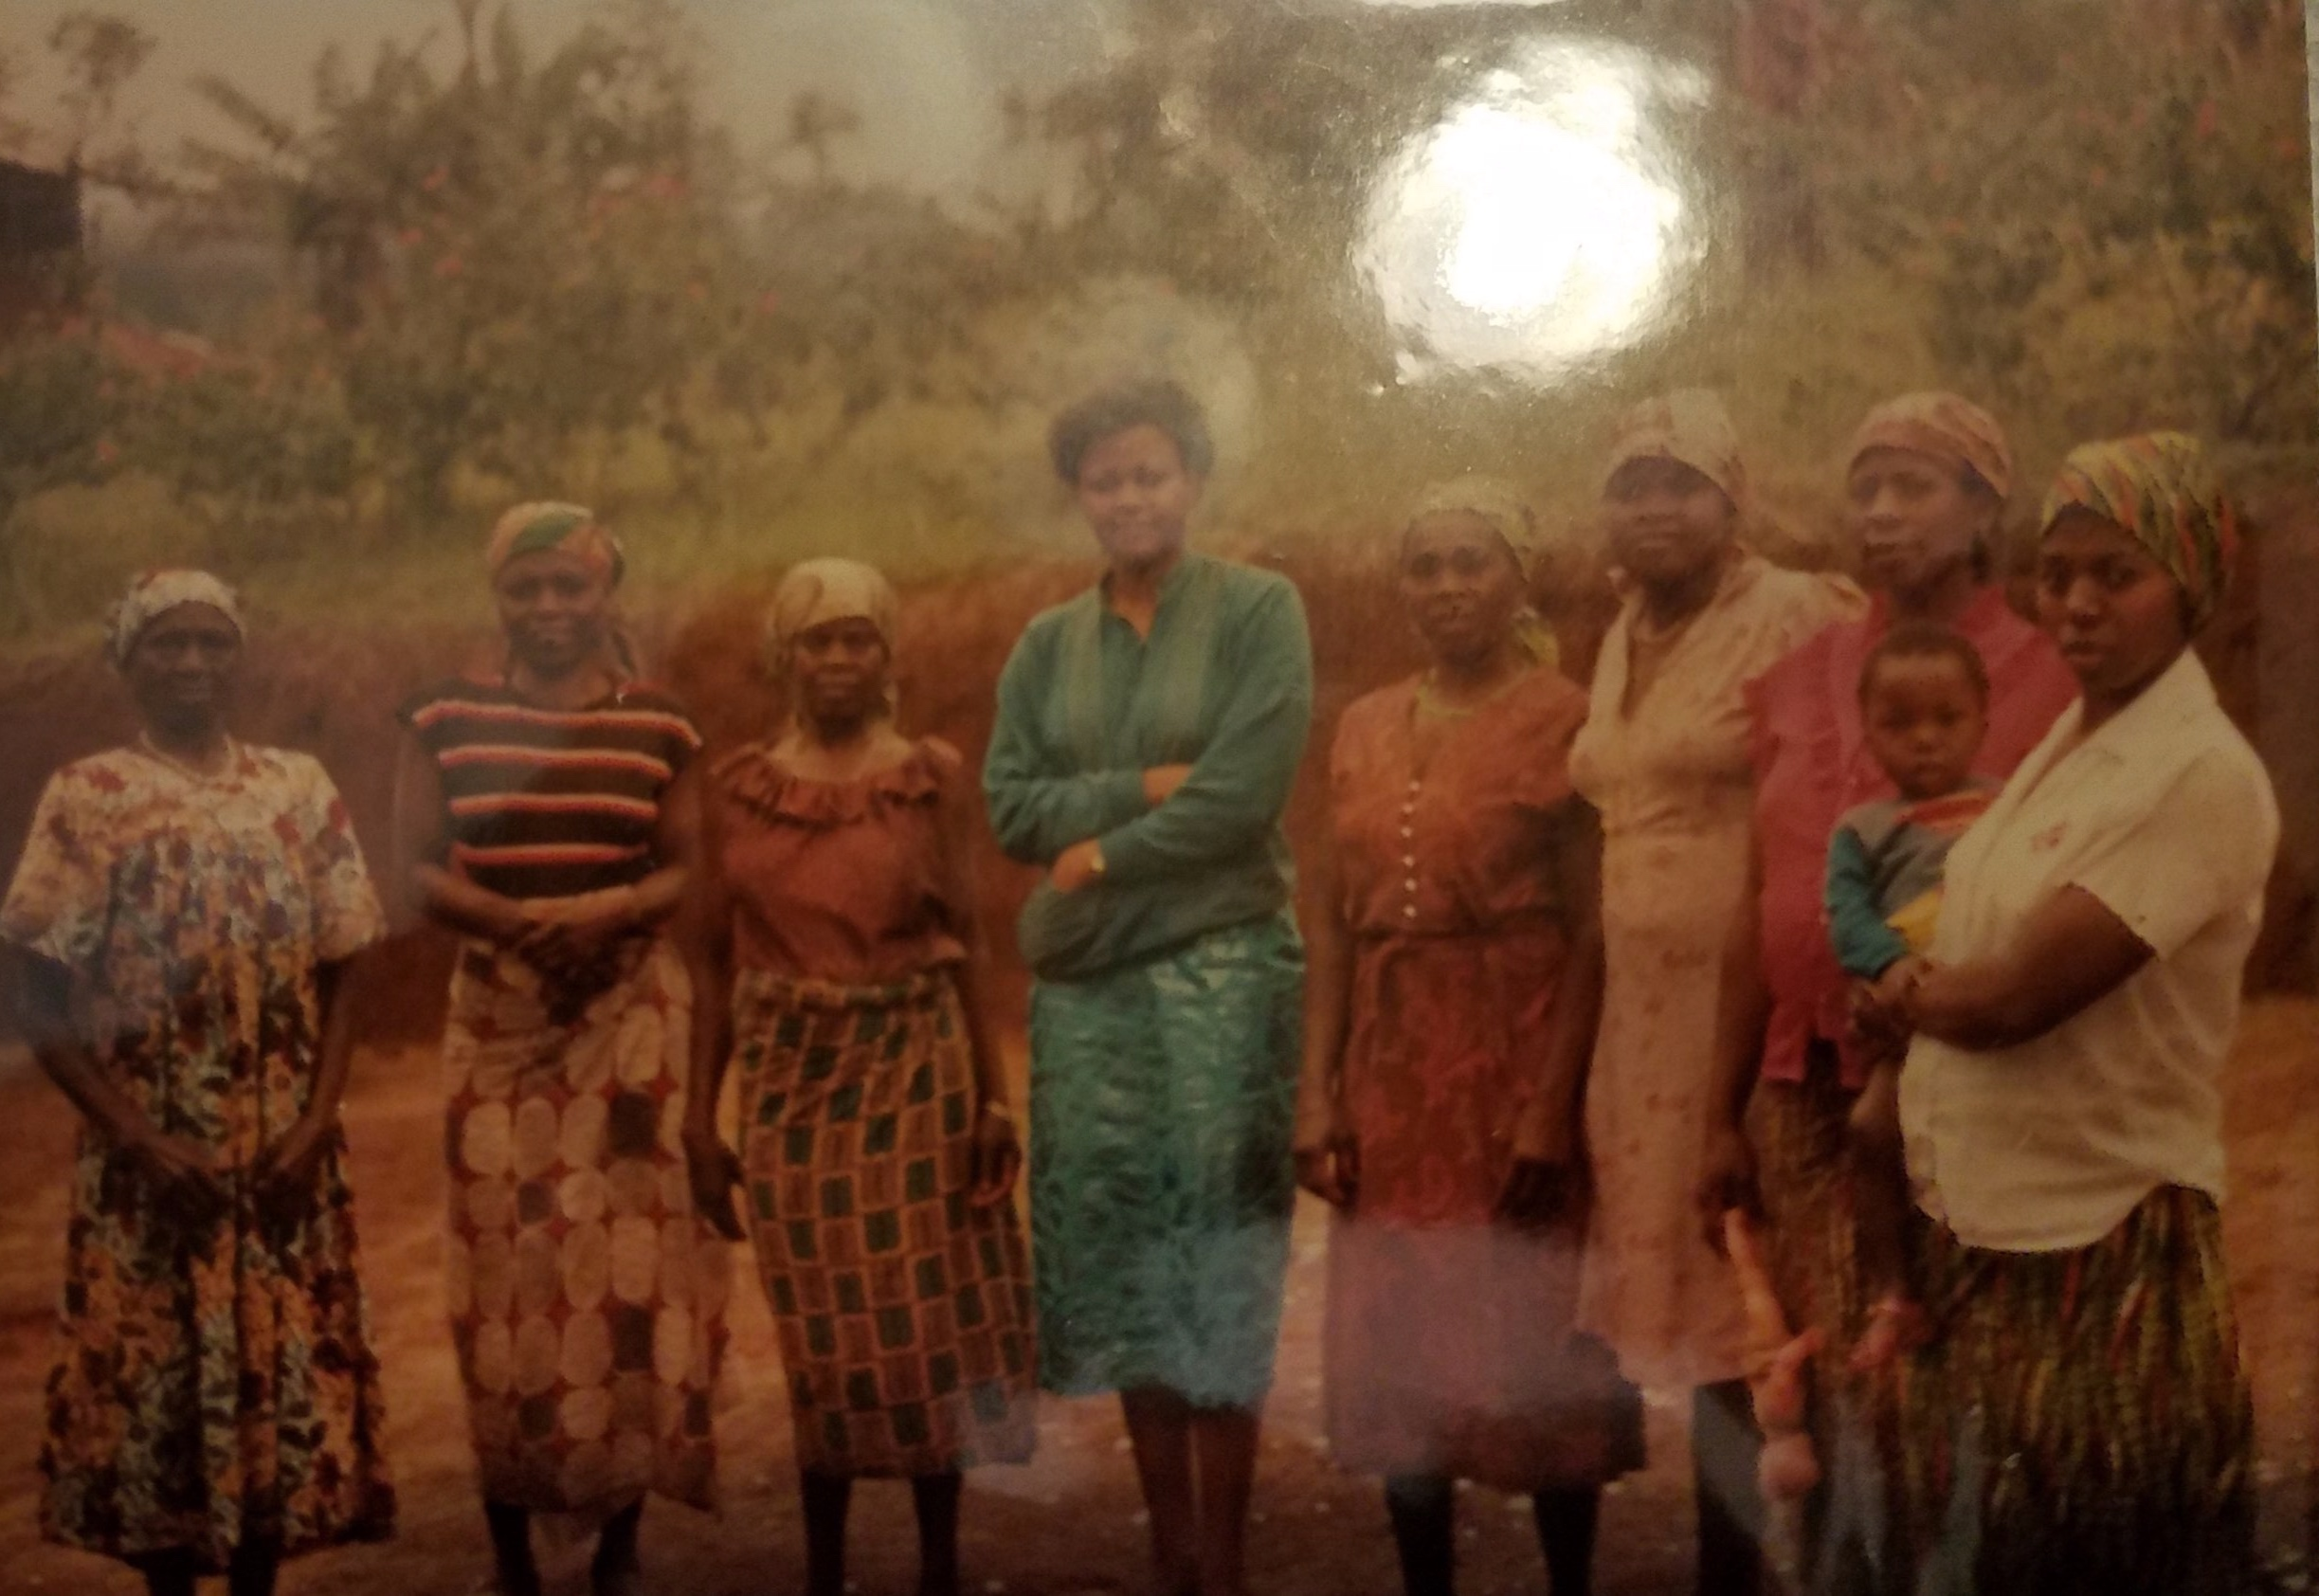 My aunt (in green) with the family of her late husband. She wears a modern skirt as the women of the village wear wrappas.